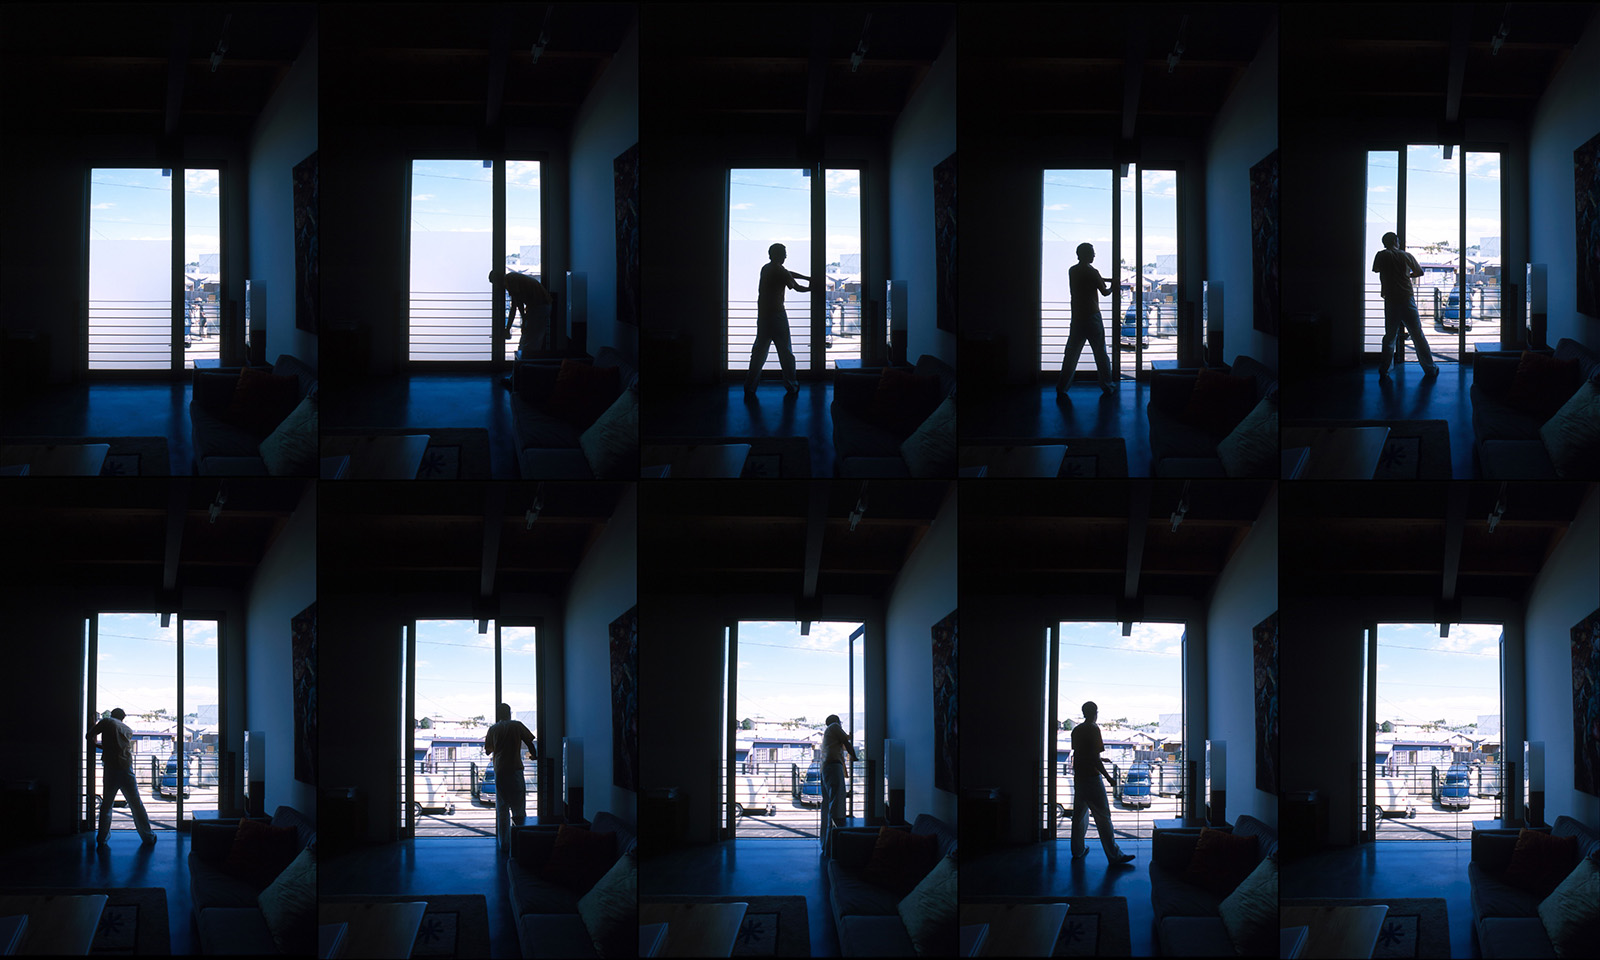 Sequence showing the use of the loading door.